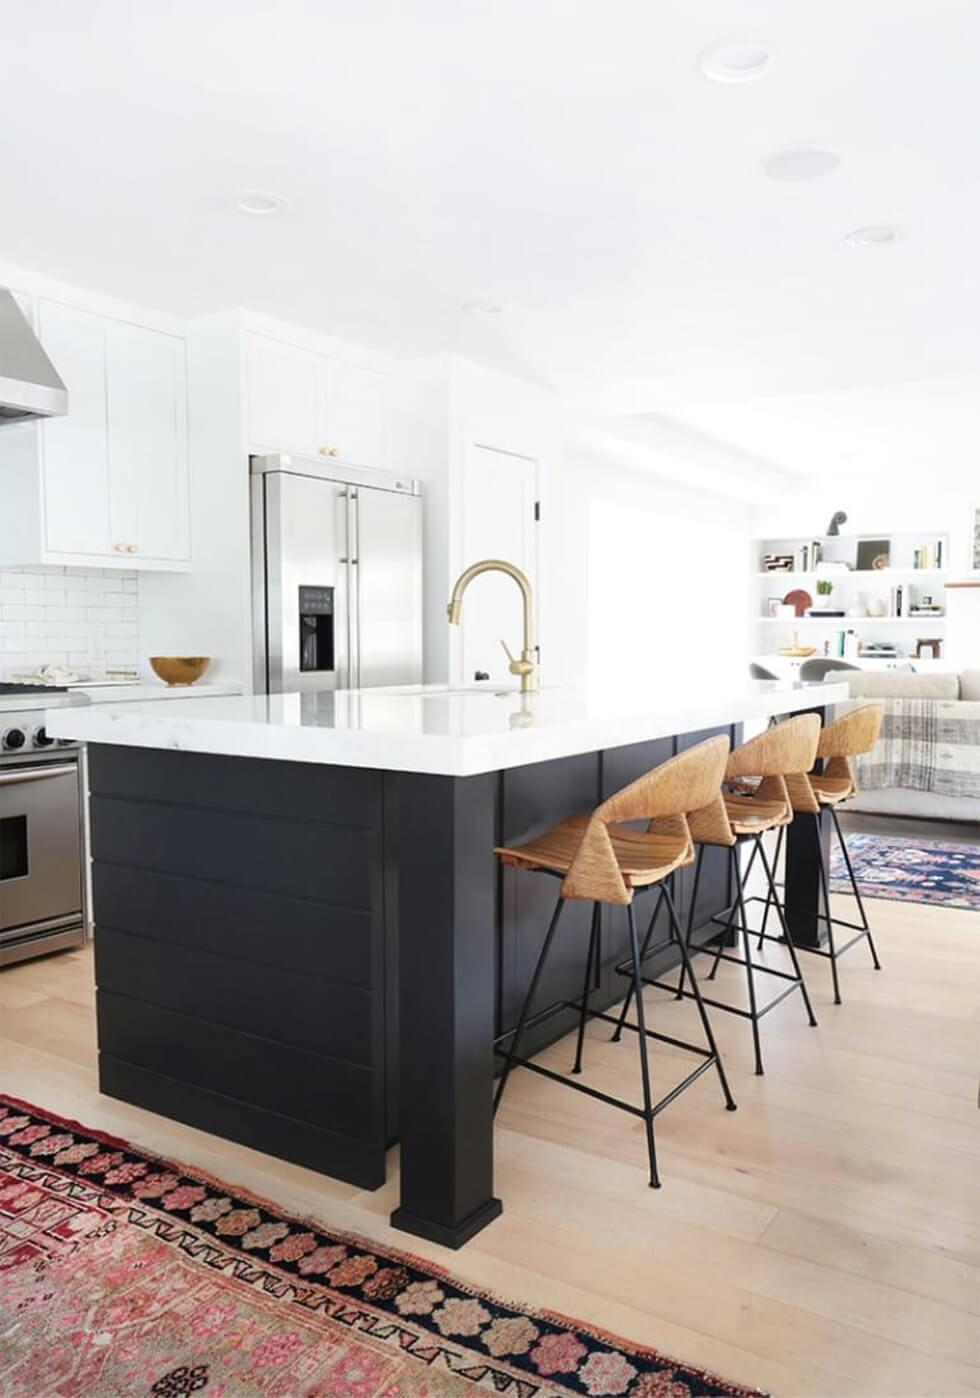 Contemporary kitchen with rattan bar stools